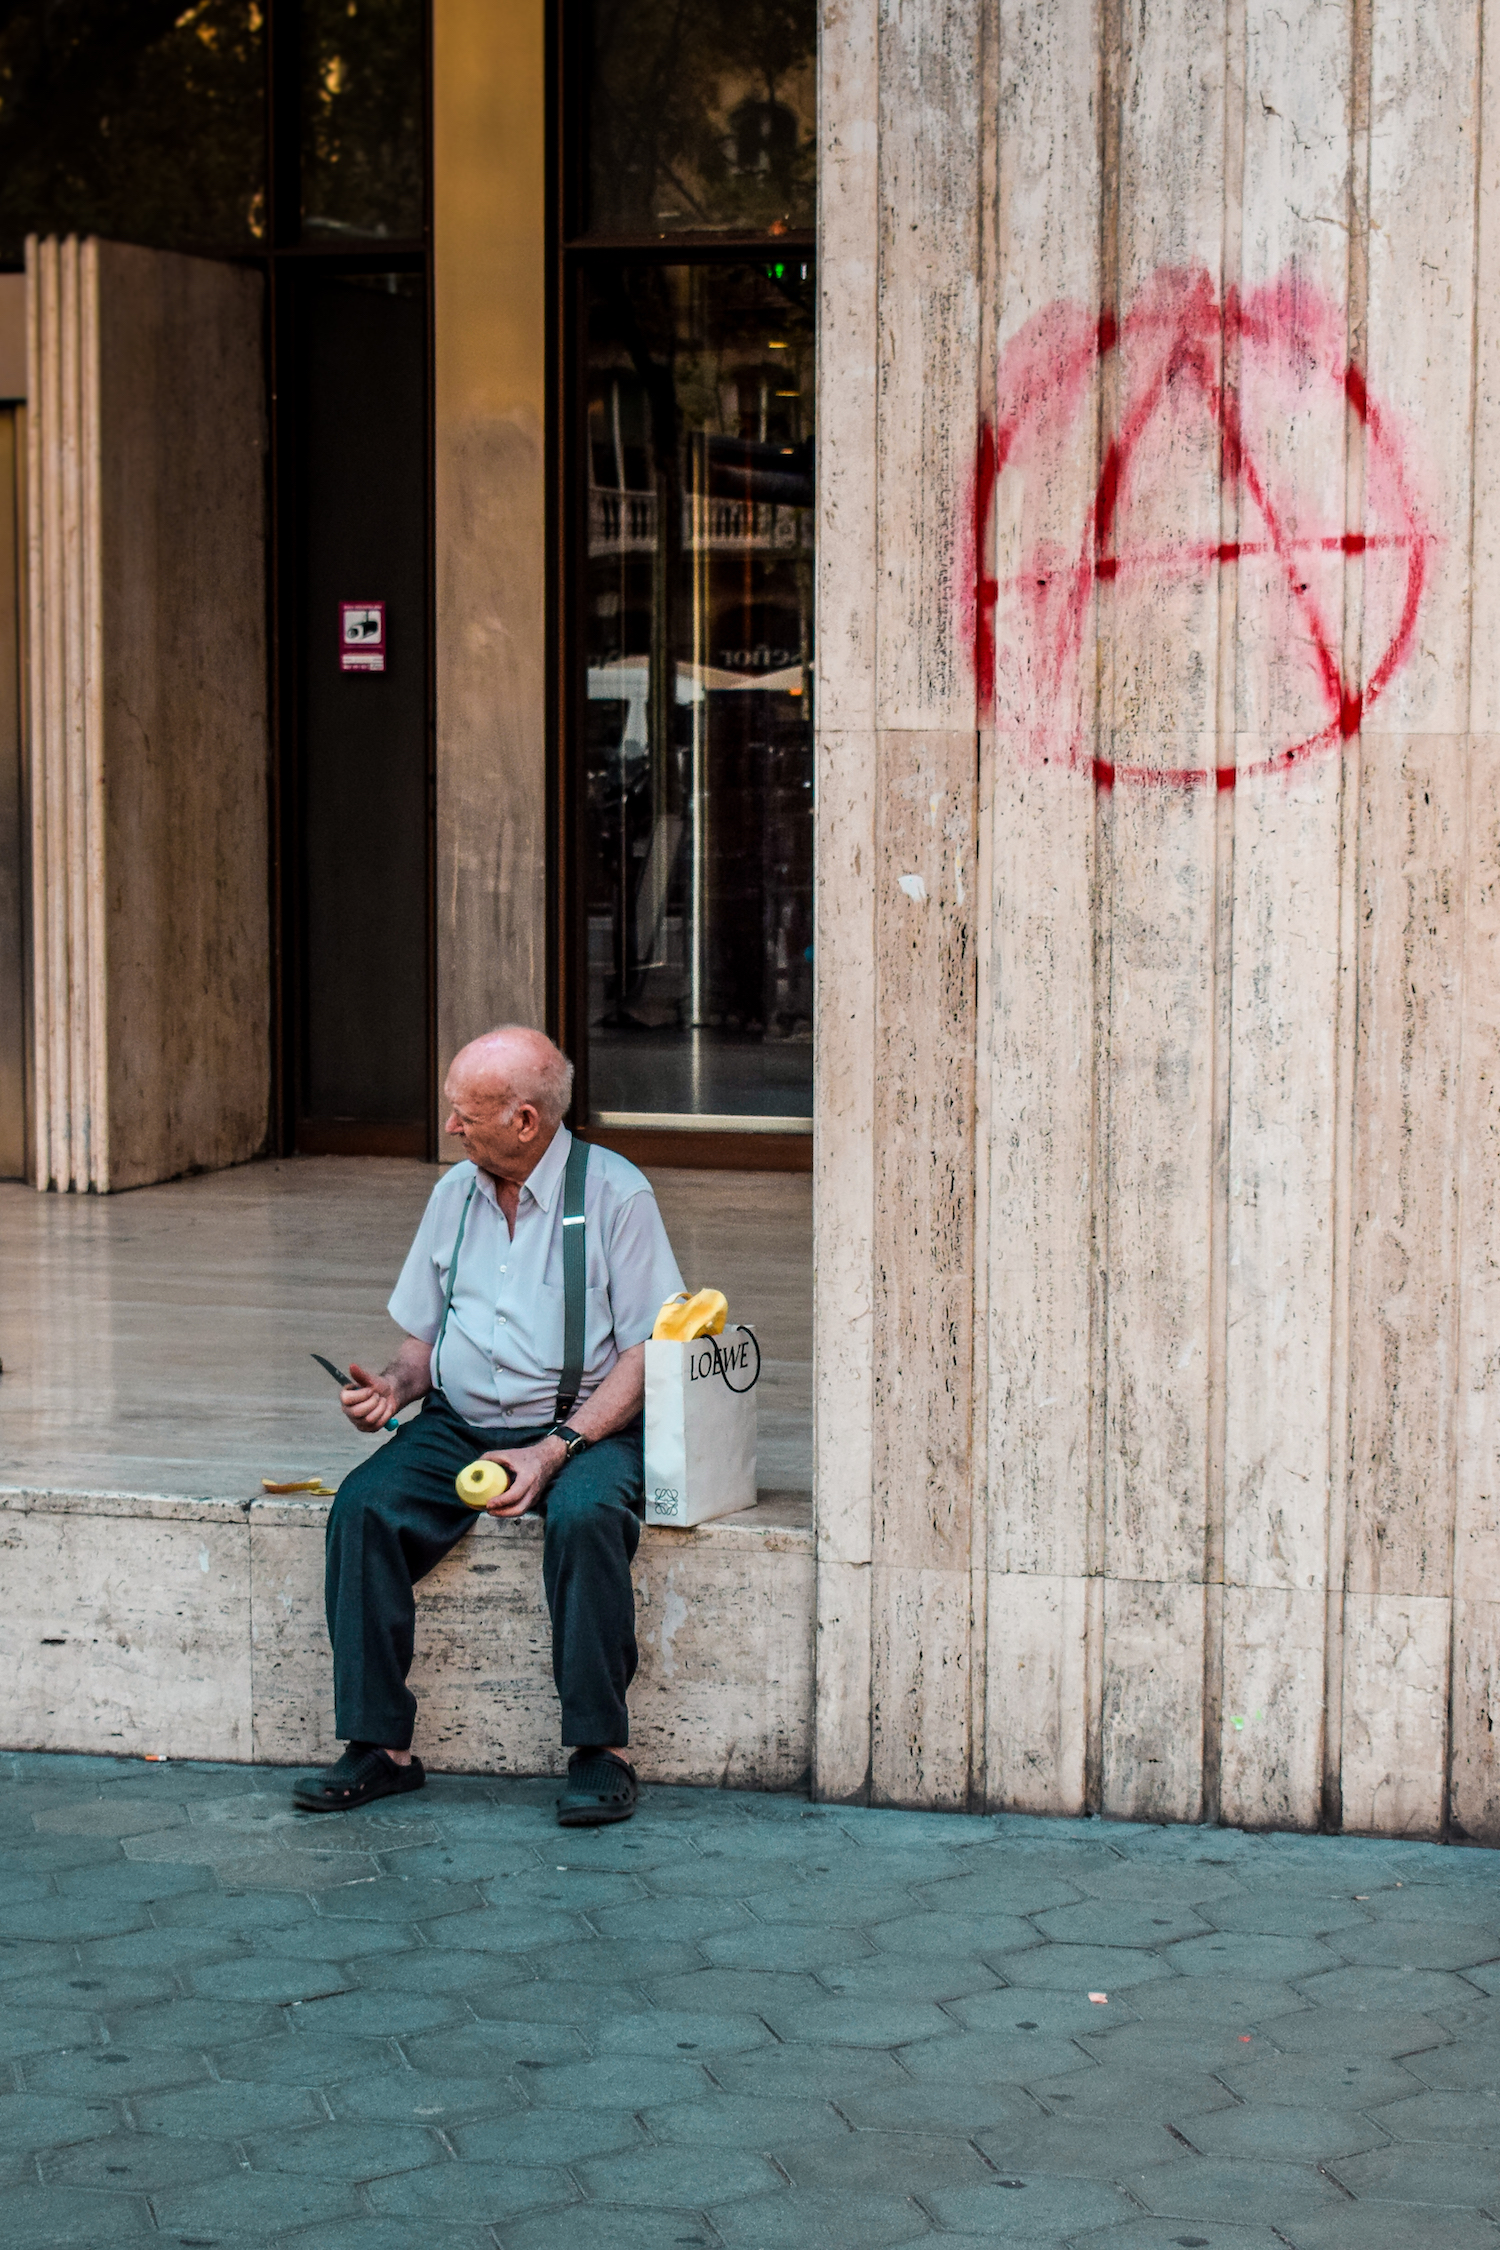 Anarchy in Barcelona - by Ben Holbrook